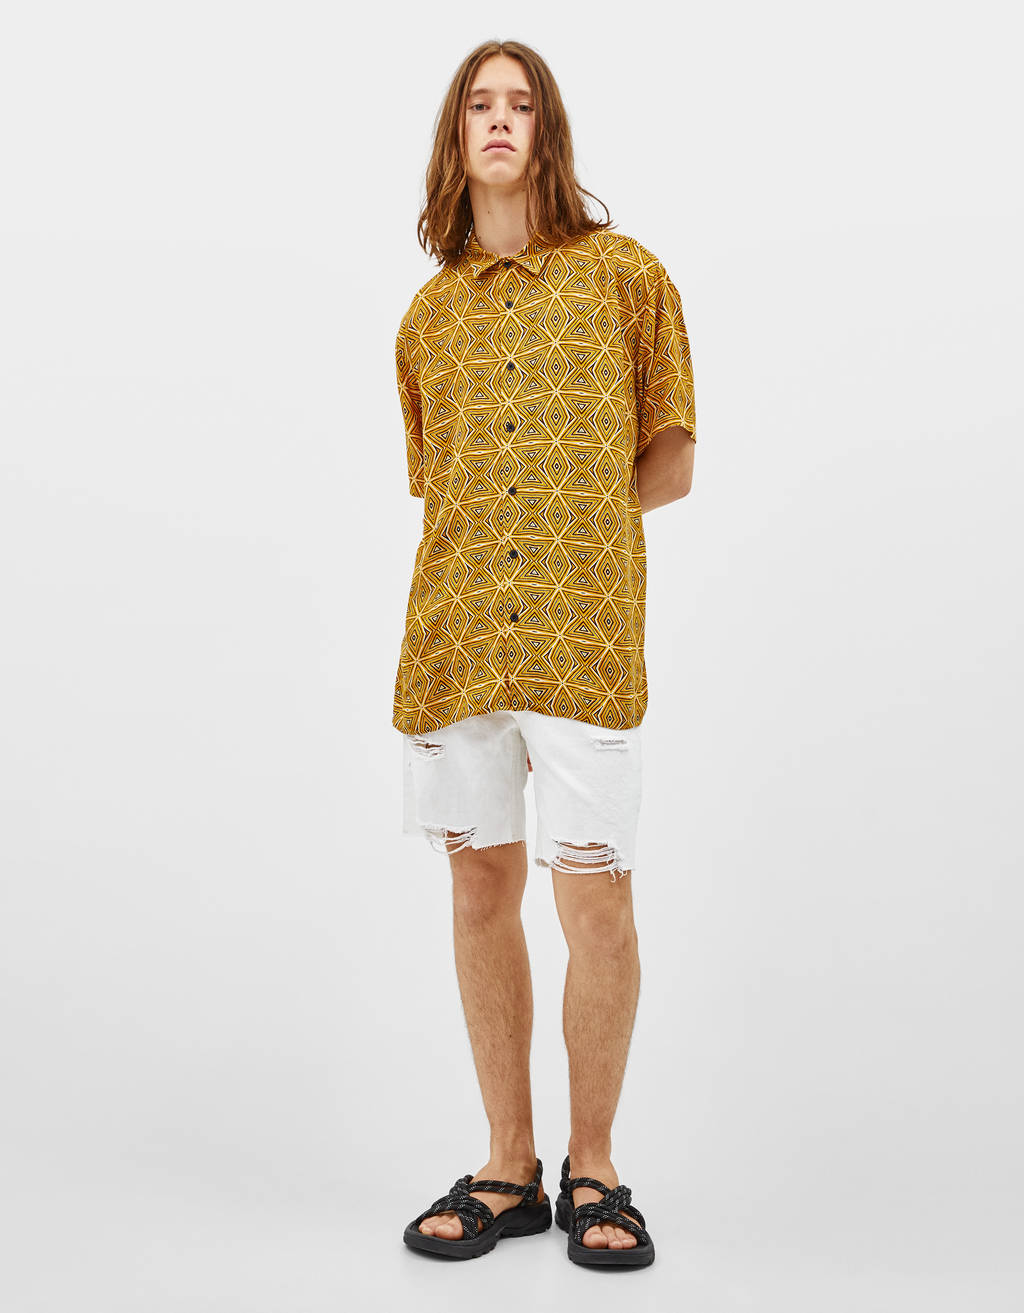 Loose-fitting printed shirt